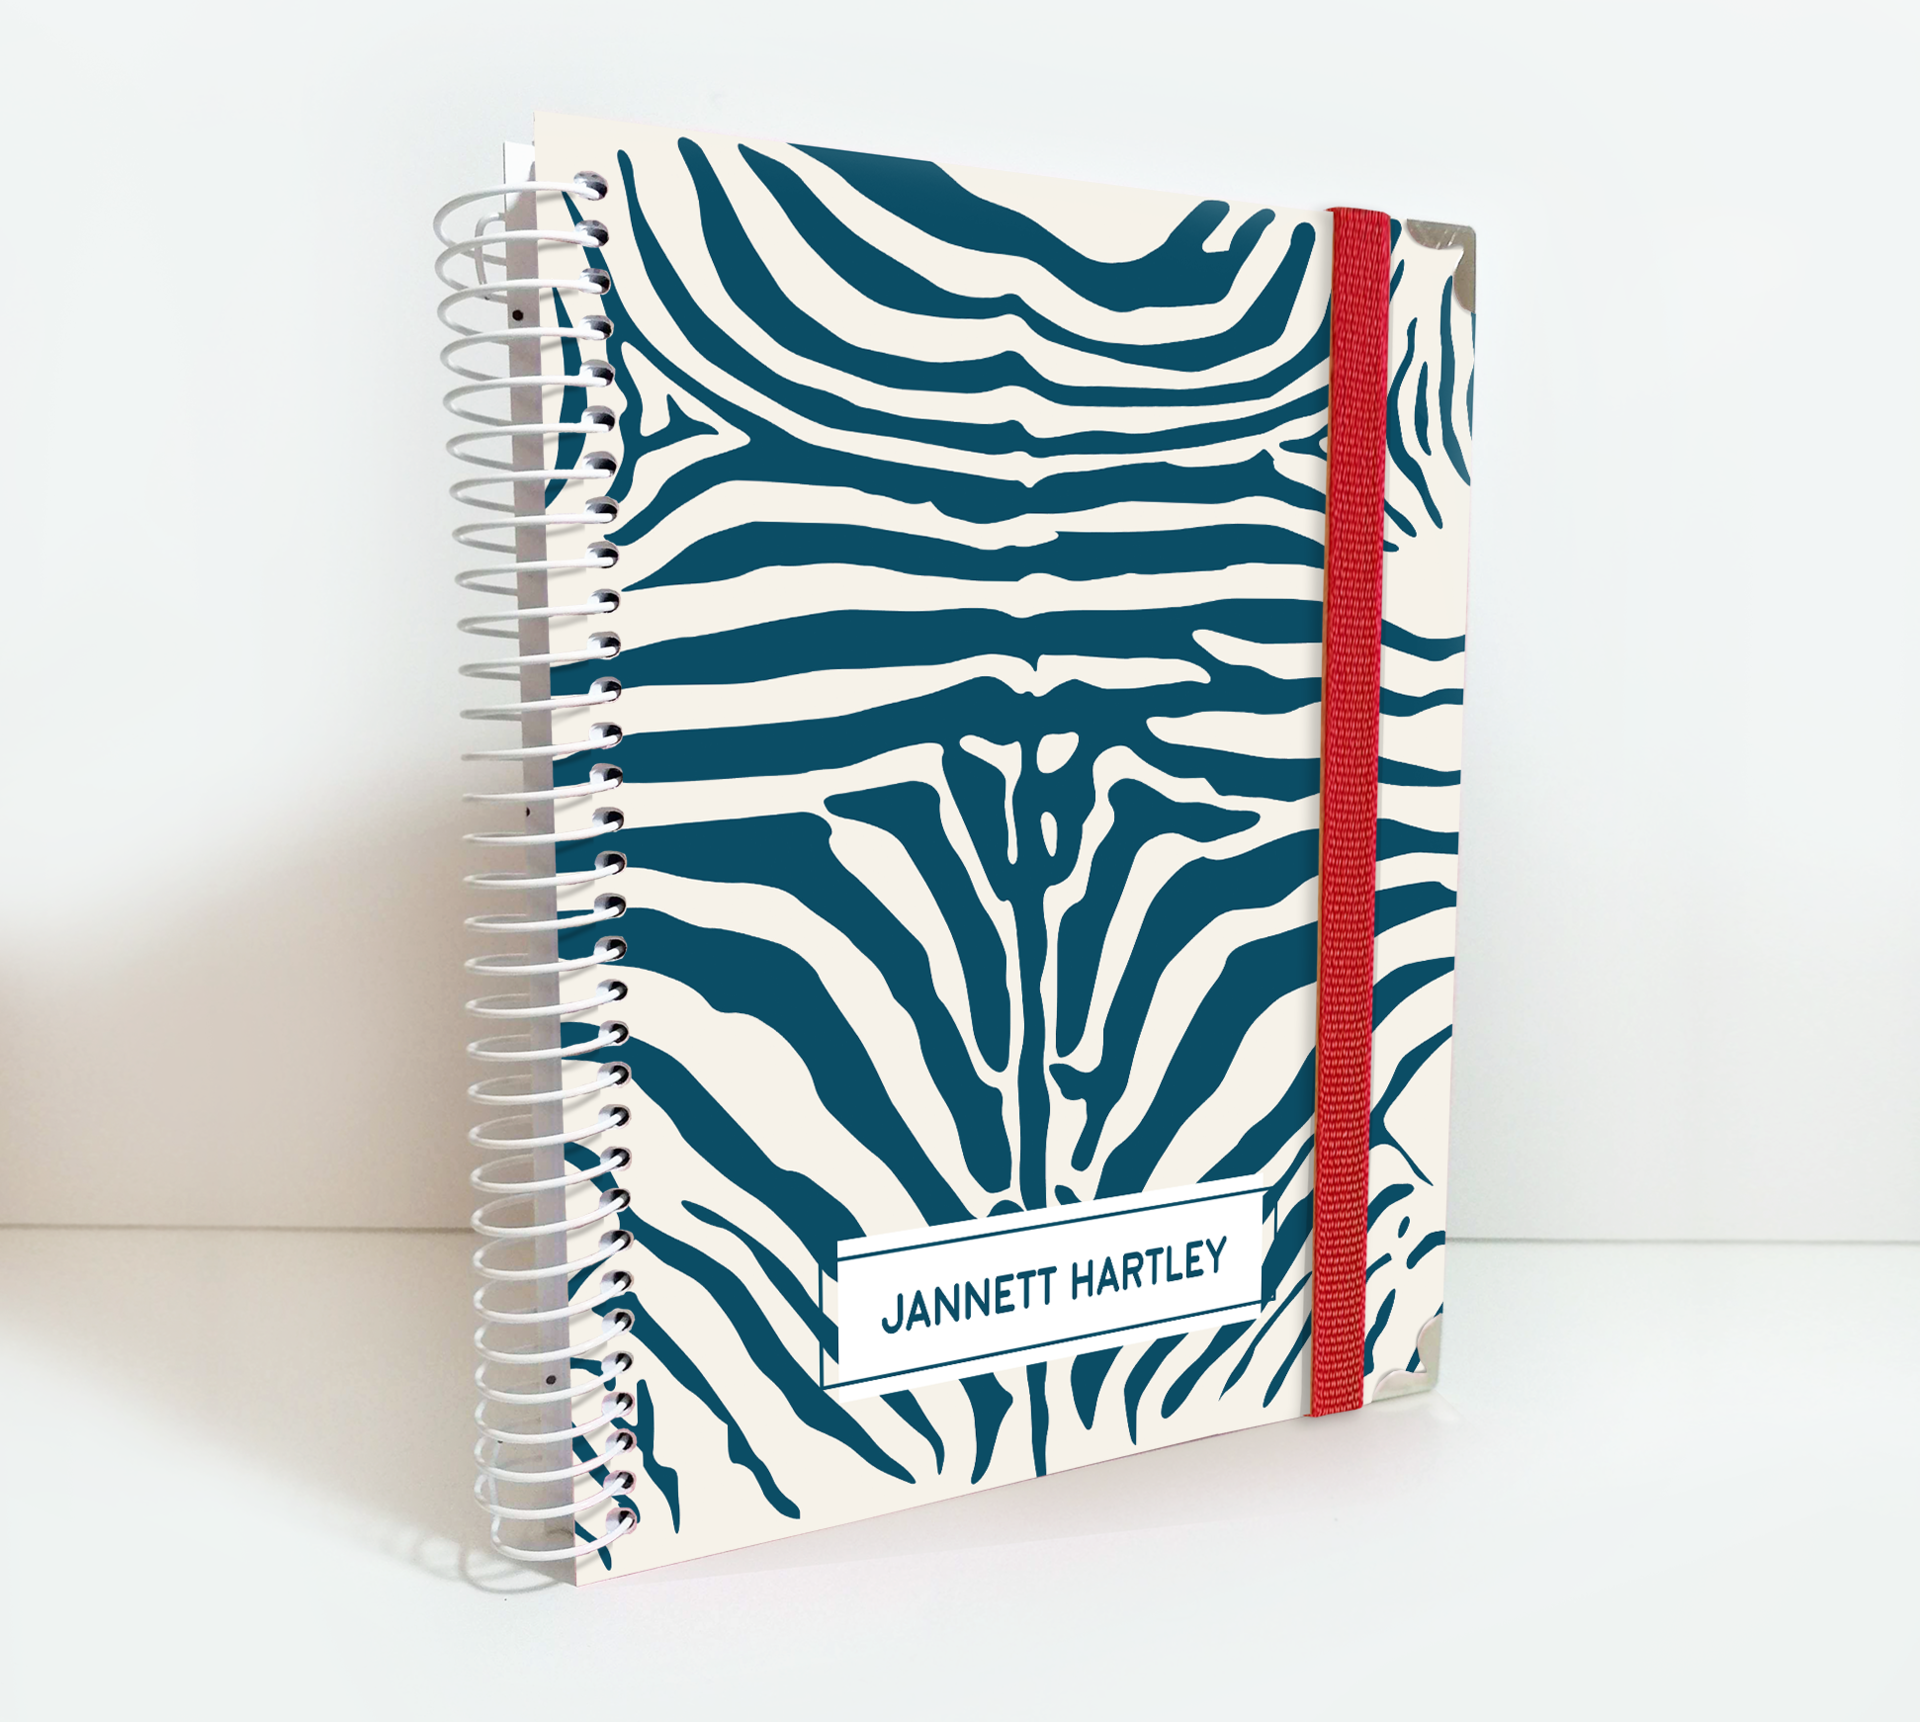 Personalized Weekly Planner Zebra Print Cover by kasefazem for 2020/2021